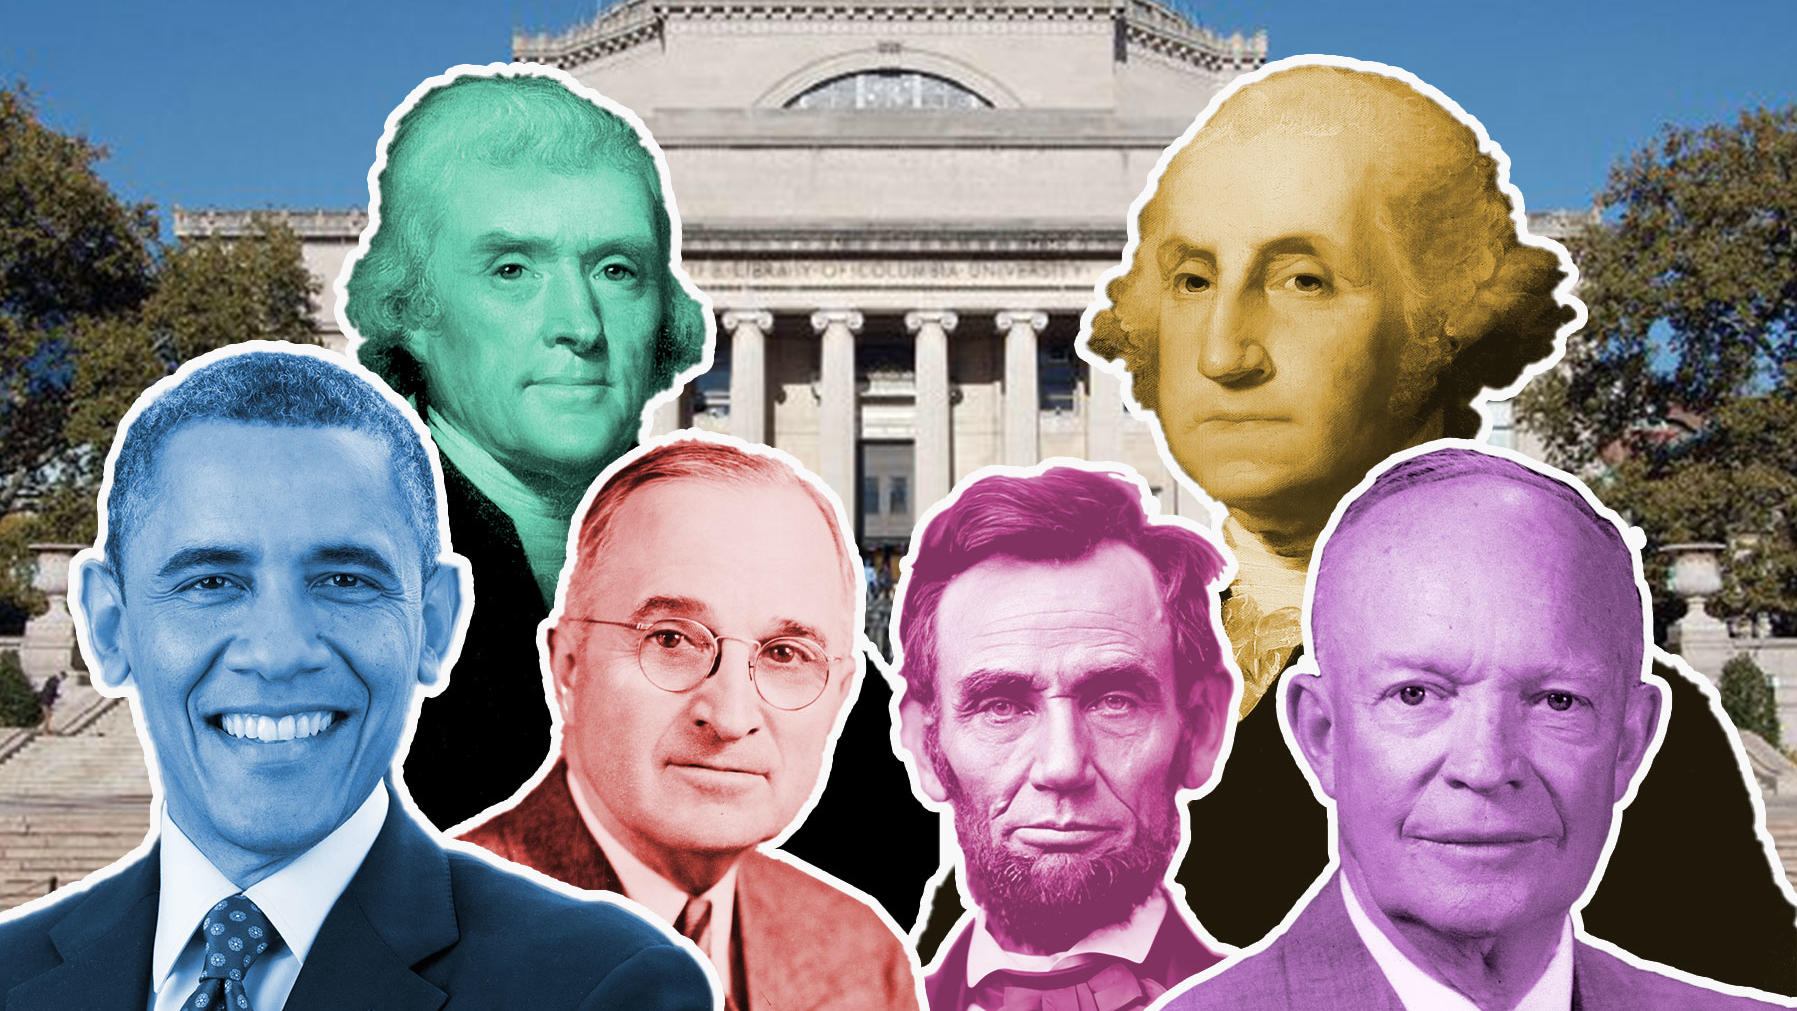 Collage of Barack Obama, Thomas Jefferson, Harry Truman, Abraham Lincoln, George Washington, and Dwight D. Eisenhower on Columbia University campus with Low Library in background